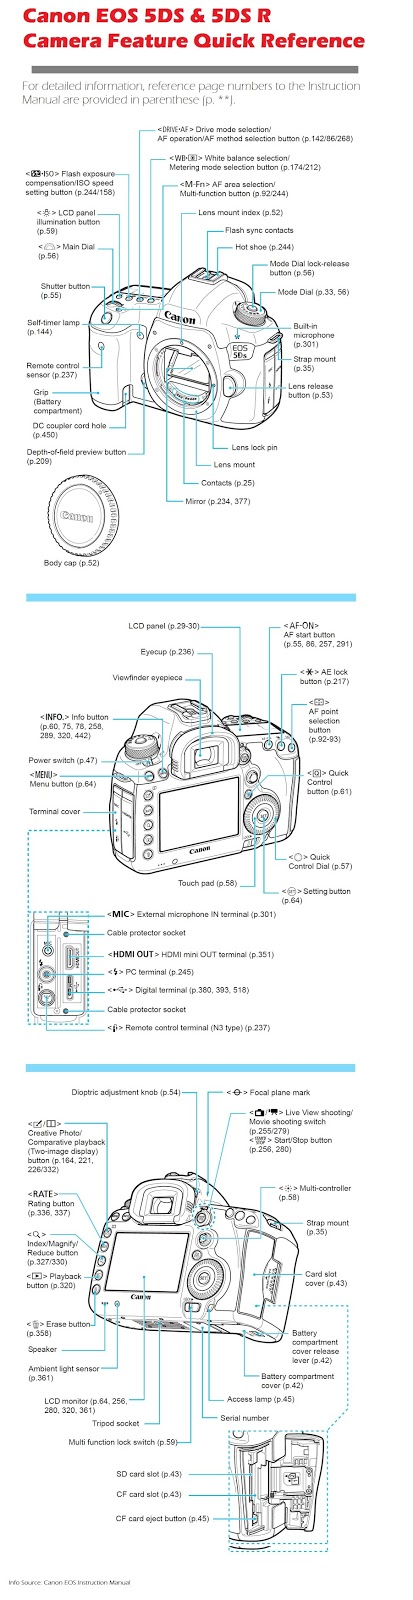 Canon Eos 5d Series Dslr User Manual And Software Resource Gadget